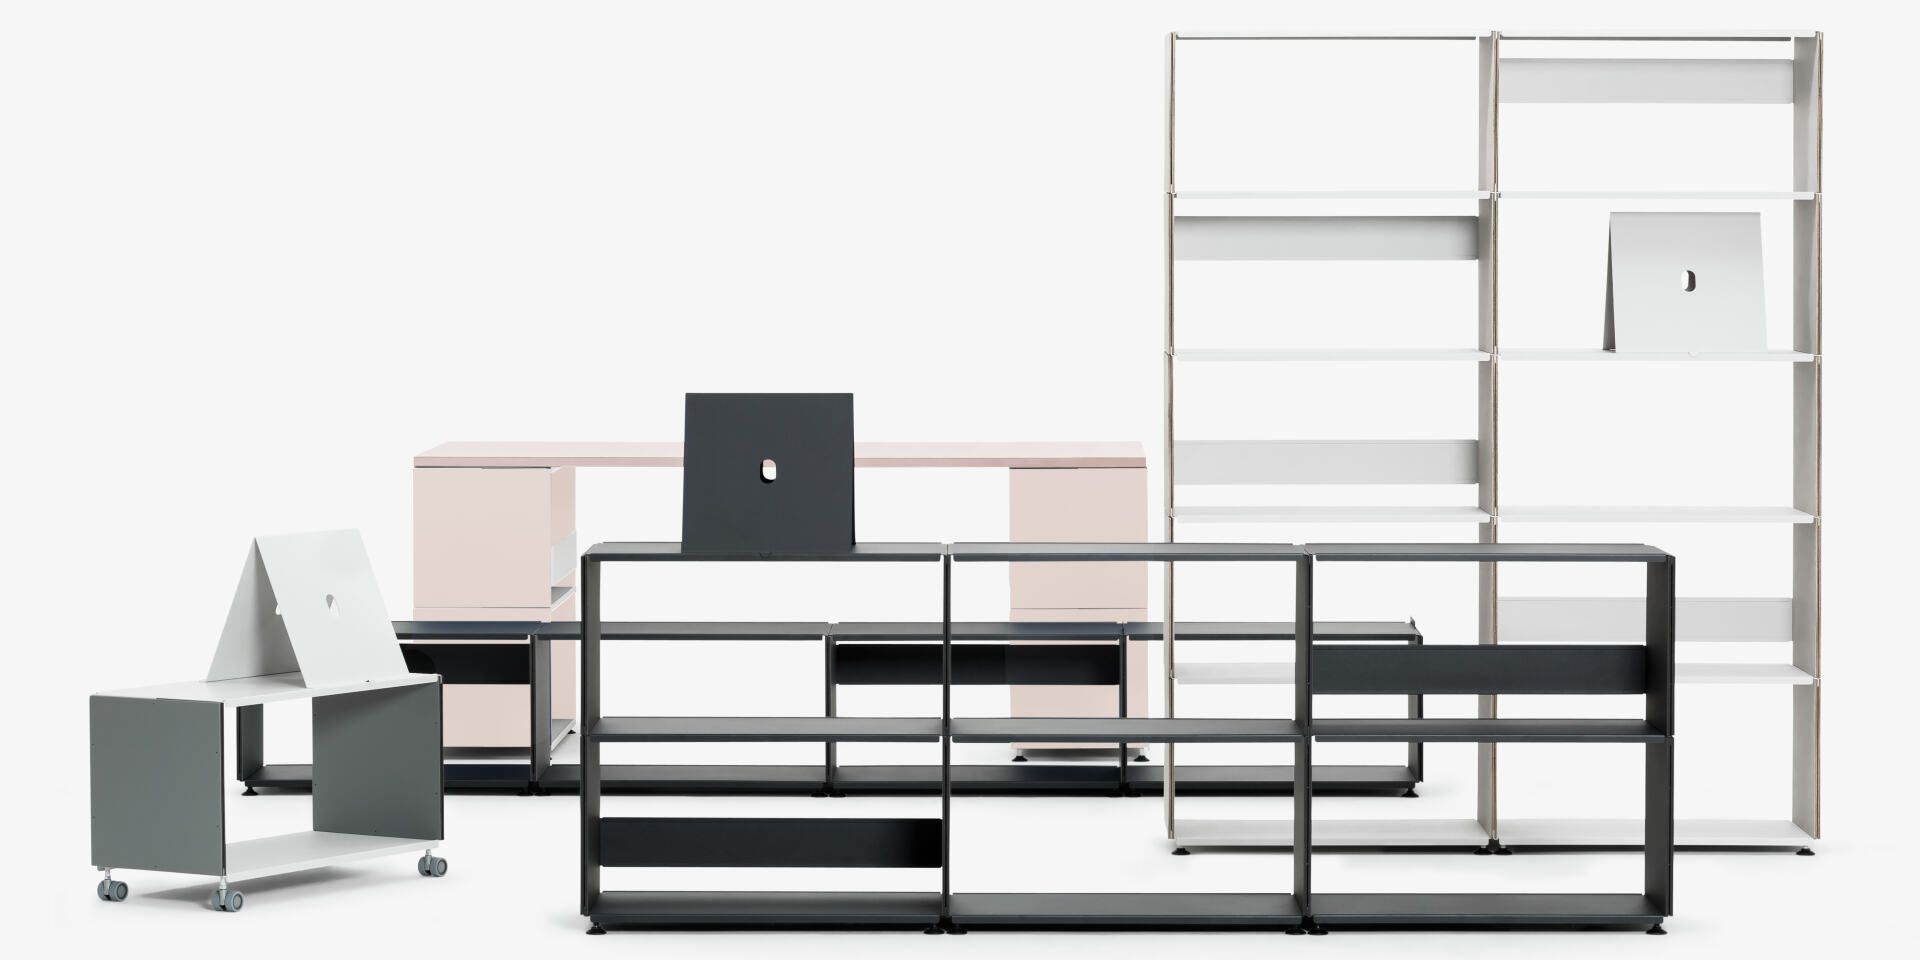 FAUST-LINOLEUM_PLUSMINUS-SHELVING-SYSTEM_DESIGN-DANIEL-LORCH_PHOTO-HAW-LIN_0270_01_2